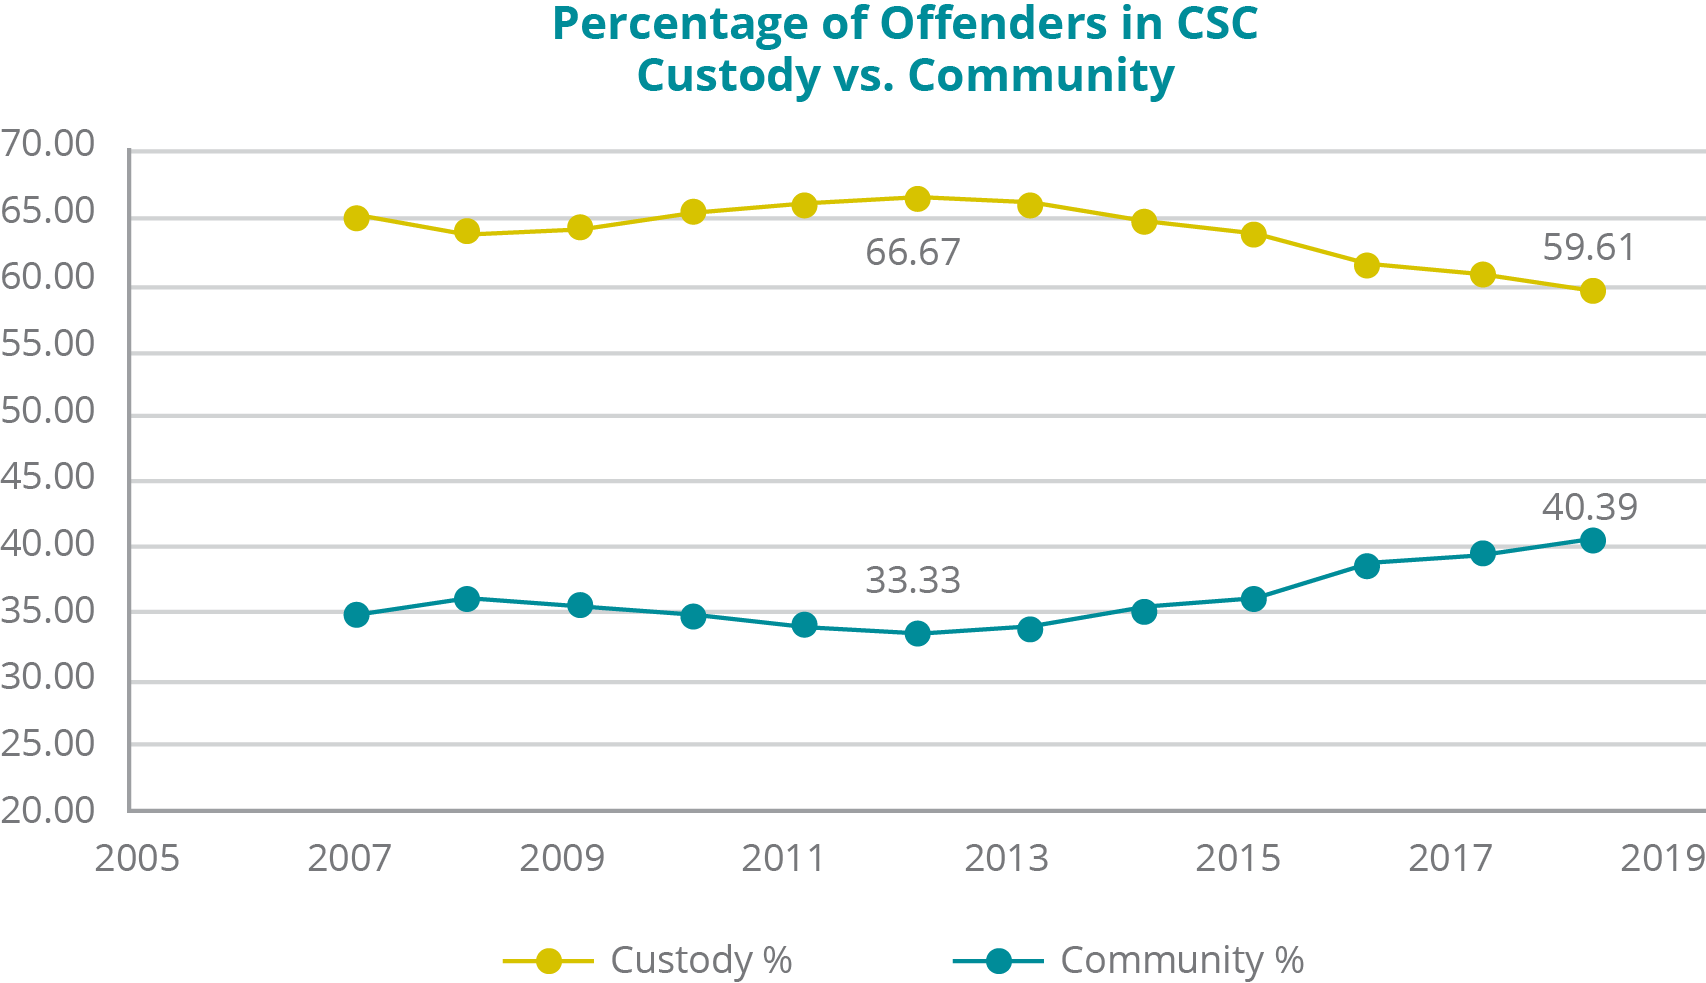 A graph depicting the percentage of offenders in CSC custody versus in the community from 2007 to 2019: - In Custody: In 2007, 65.22%; 2008, 63.83%; 2009, 64.31%; 2010, 65.45%; 2011, 66.11%; 2012, 66.67%; 2013, 66.14%; 2014, 64.83%; 2015, 63.81%; 2016, 61.44%; 2017, 60.68%; 2018, 59.61%. - In the Community: In 2007, 34.78%; 2008, 36.17%; 2009, 35.69%; 2010, 34.55%; 2011, 33.89%; 2012, 33.33%; 2013, 33.86%; 2014, 35.17%; 2015, 36.19%; 2016, 38.56%; 2017, 39.32%; 2018, 40.39%.